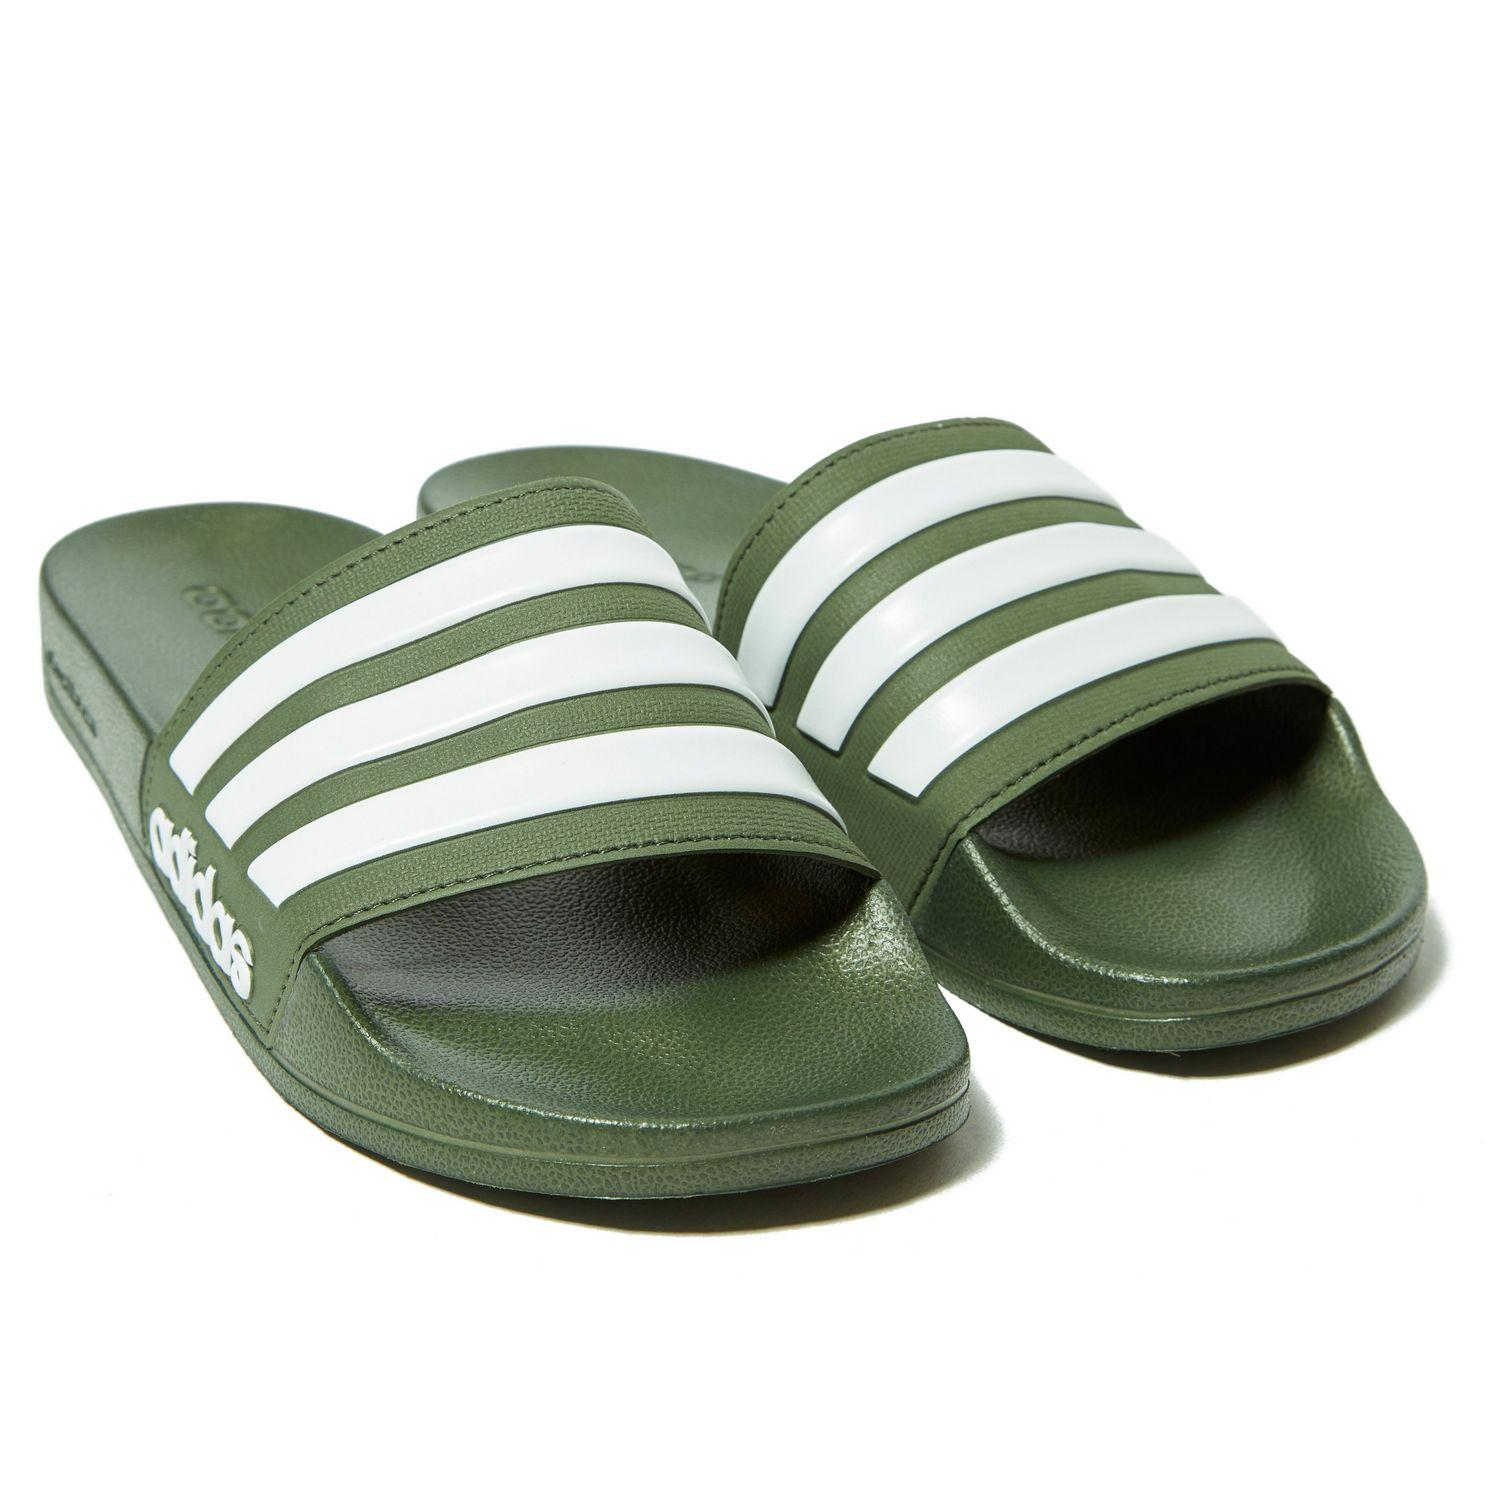 649a2bbeb5c5e7 Adidas - Green Cloudfoam Adilette Slides for Men - Lyst. View fullscreen